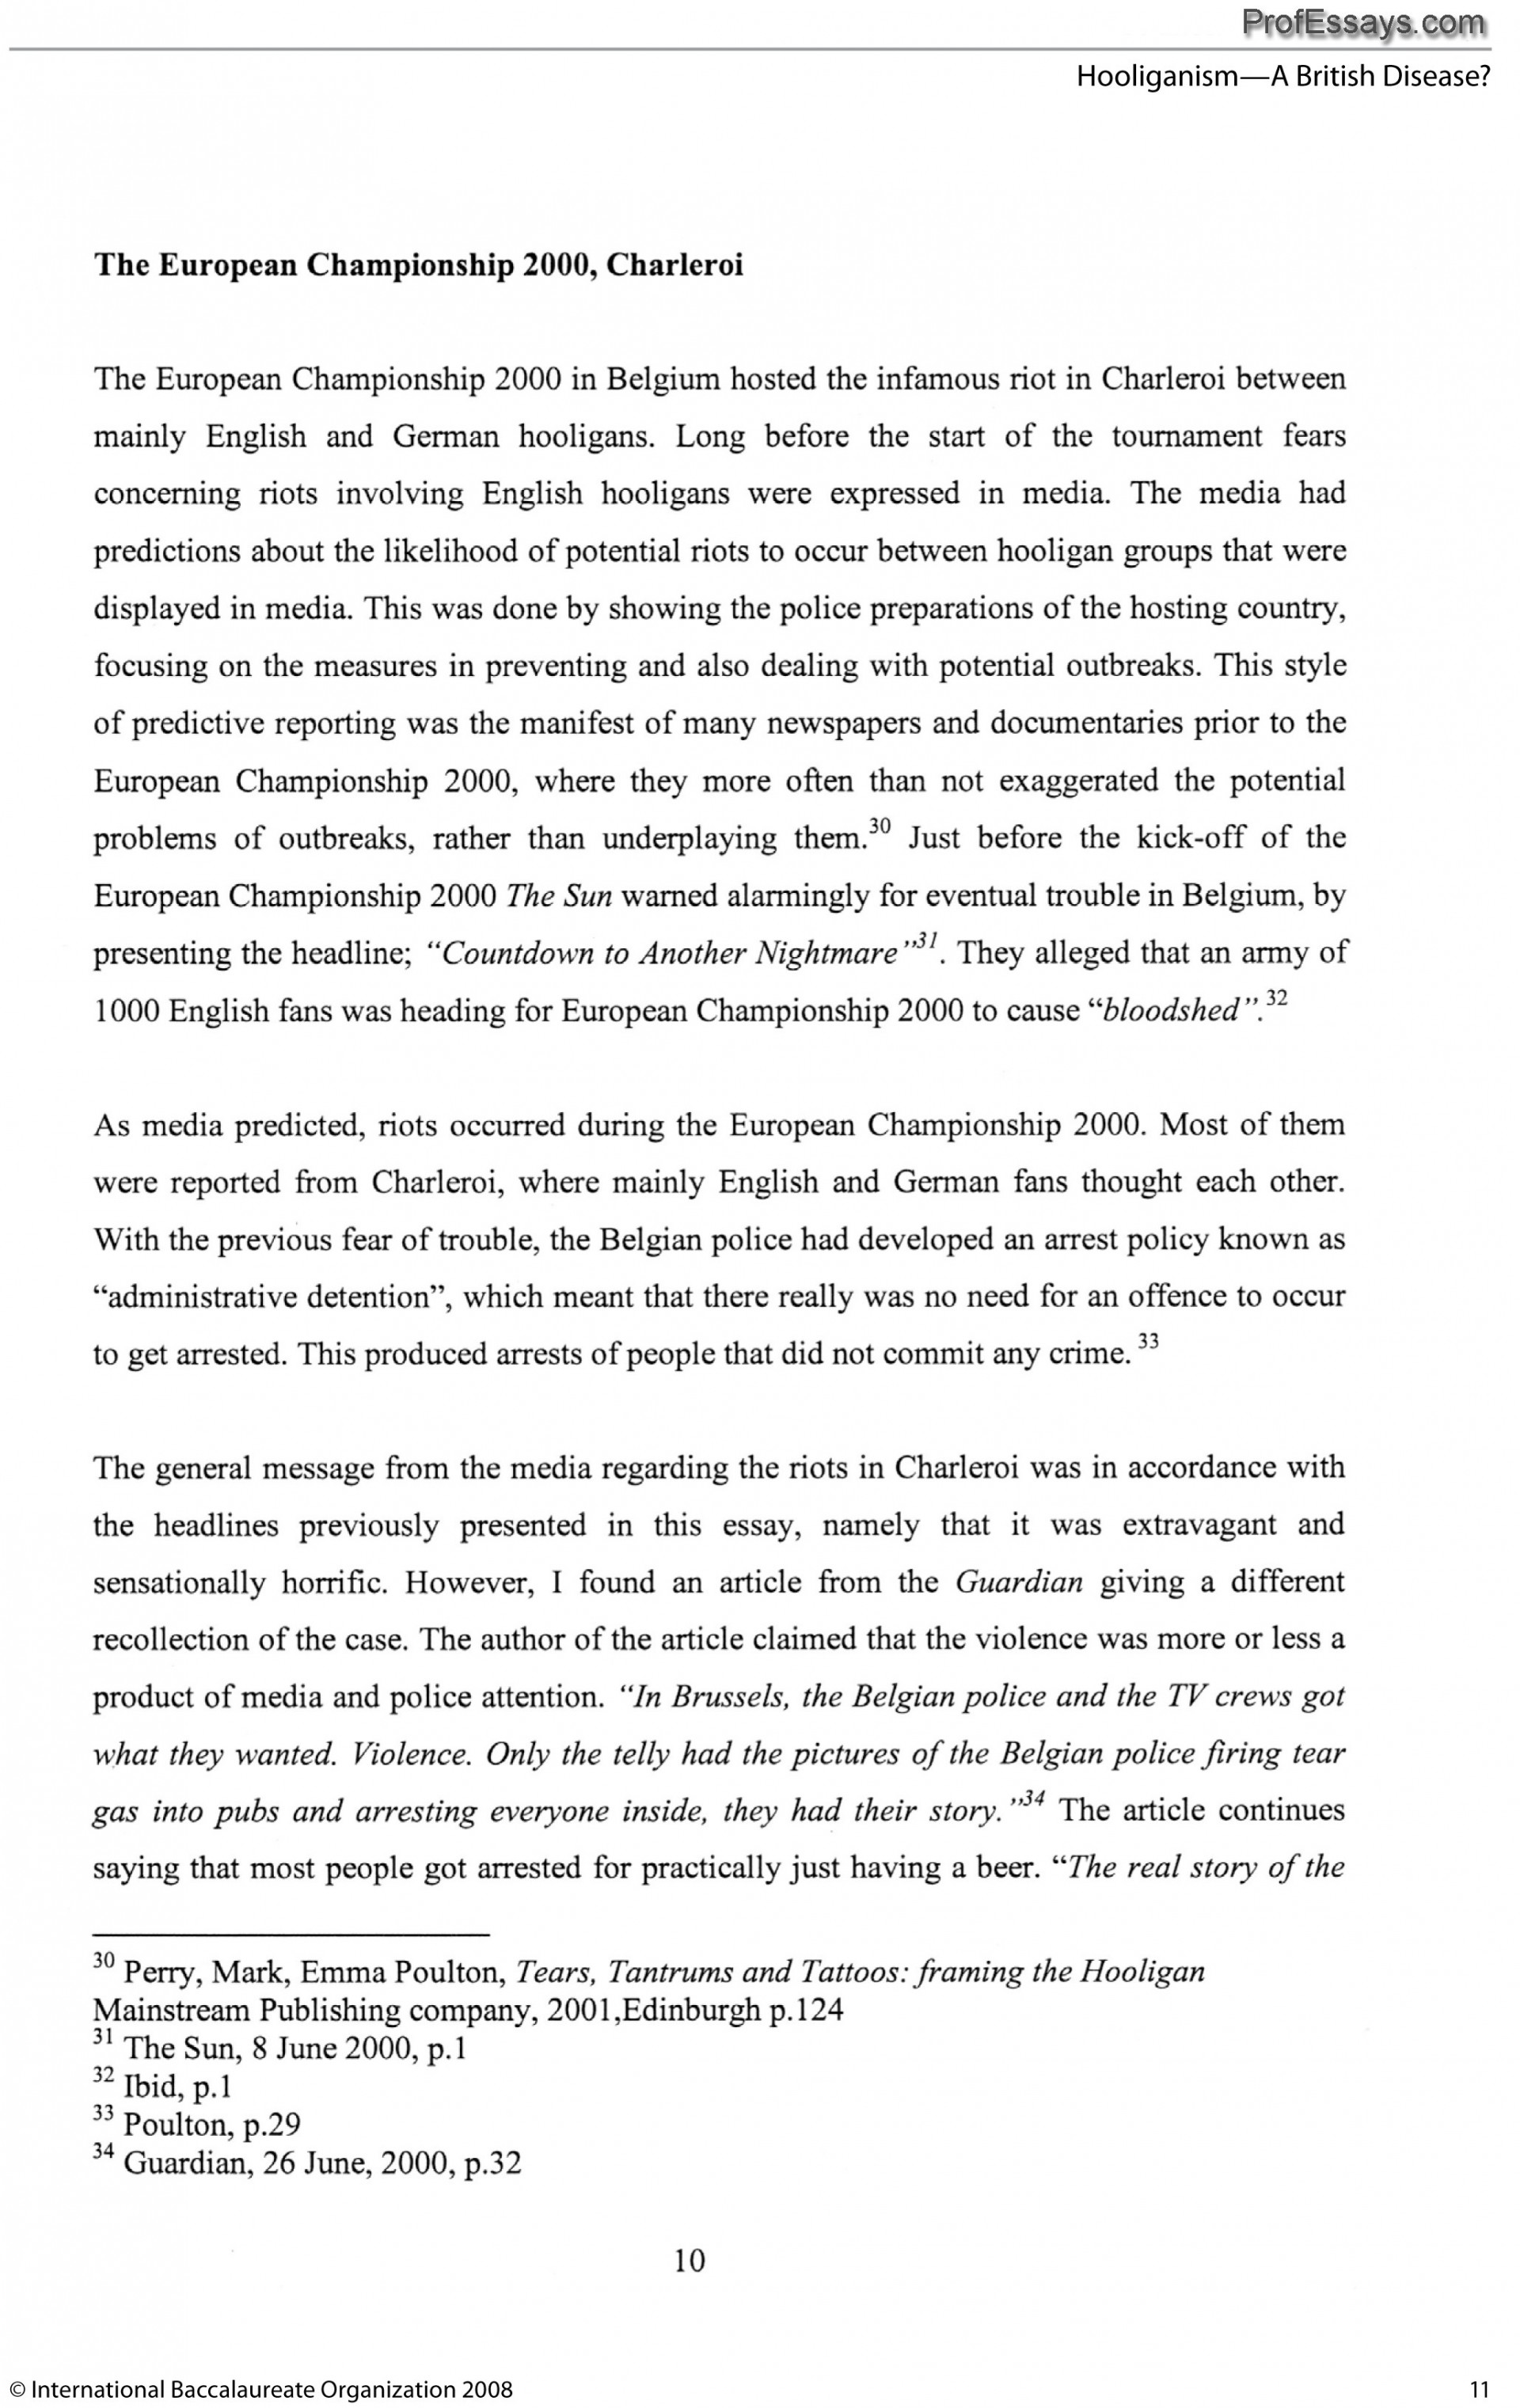 014 Ib Extended Essay Free Sample Example Definition Striking Topics For High School Creative 1920